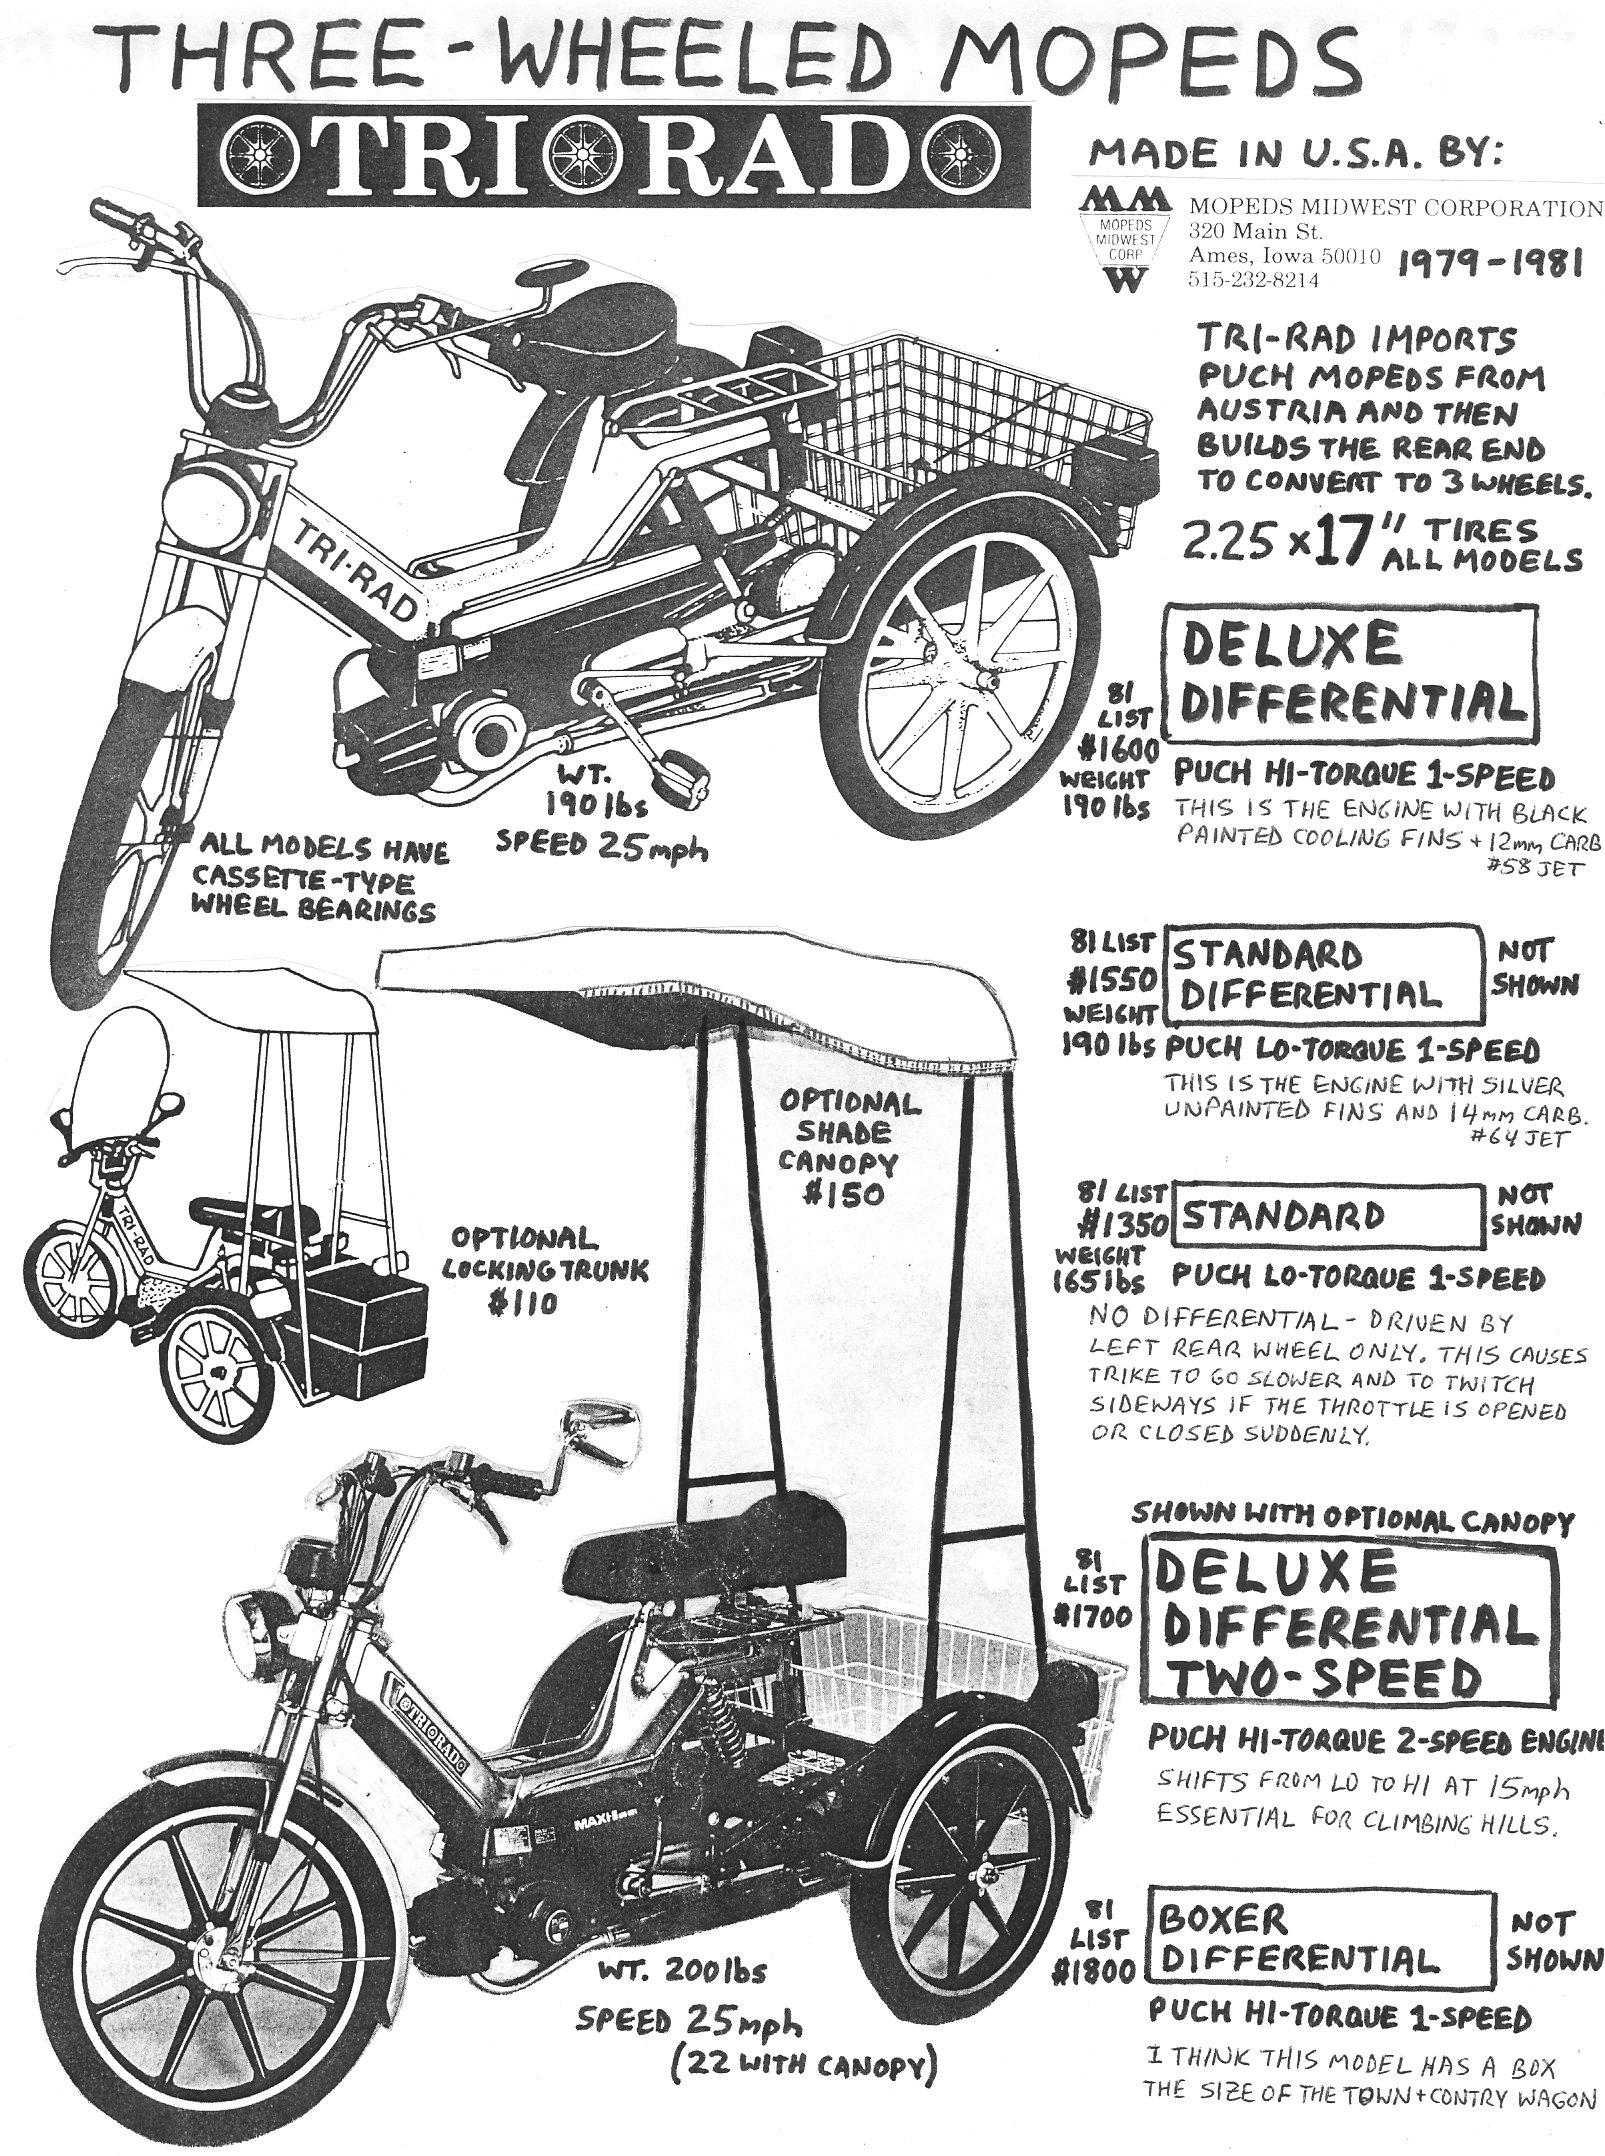 49cc Gas Moped Scooter Wiring Diagram 2004